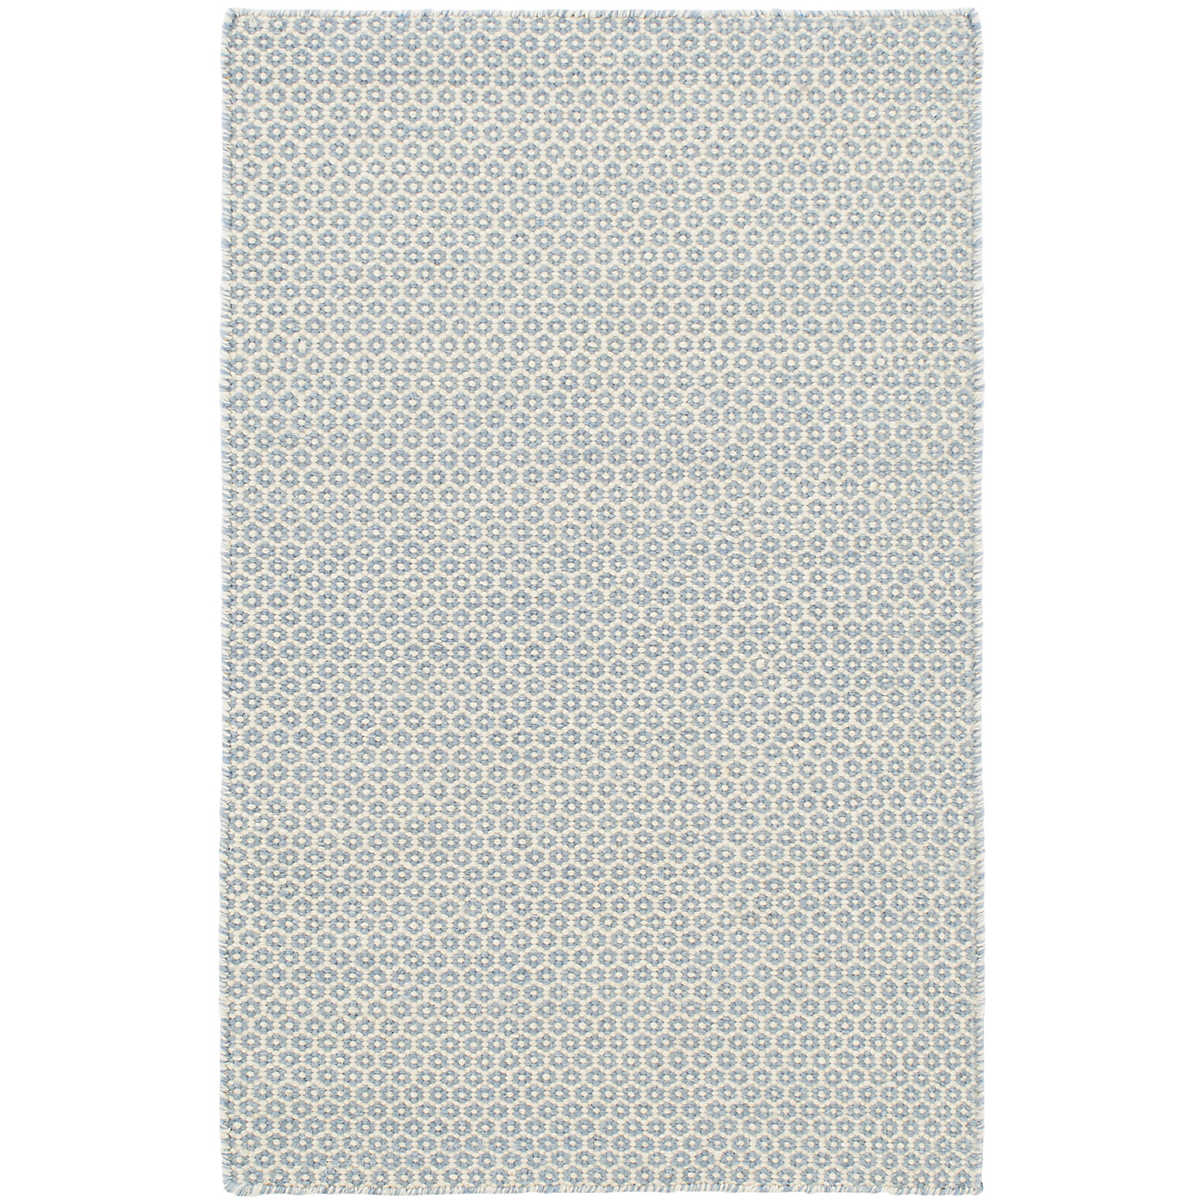 Honeycomb French Blue /Ivory Wool Rug